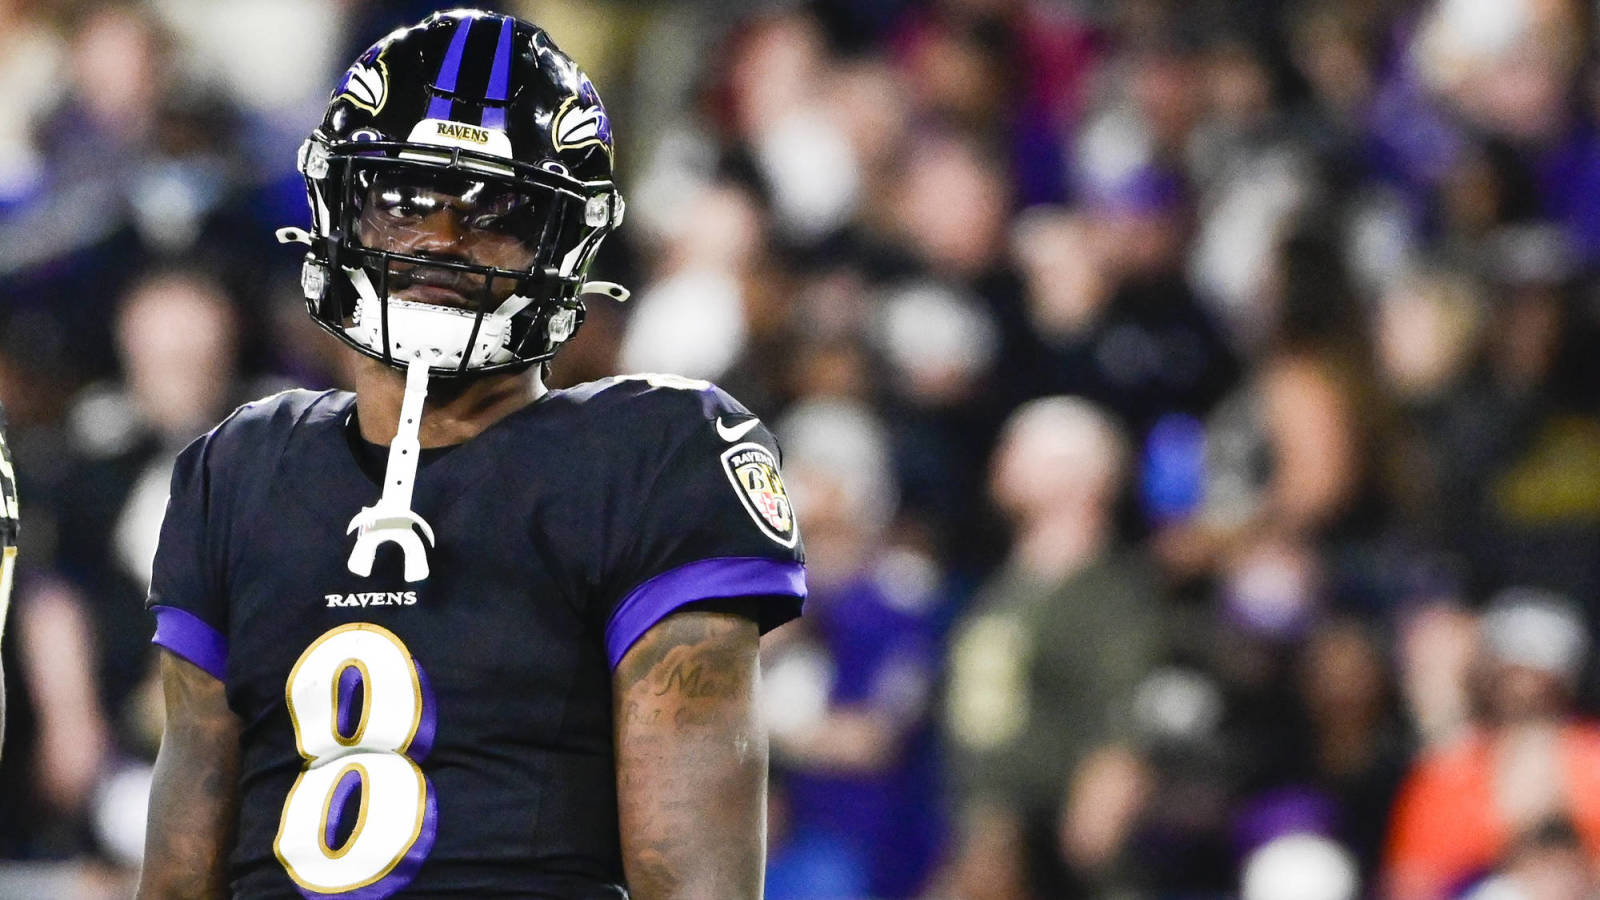 Ravens QB Lamar Jackson returns to practice ahead of Chargers game